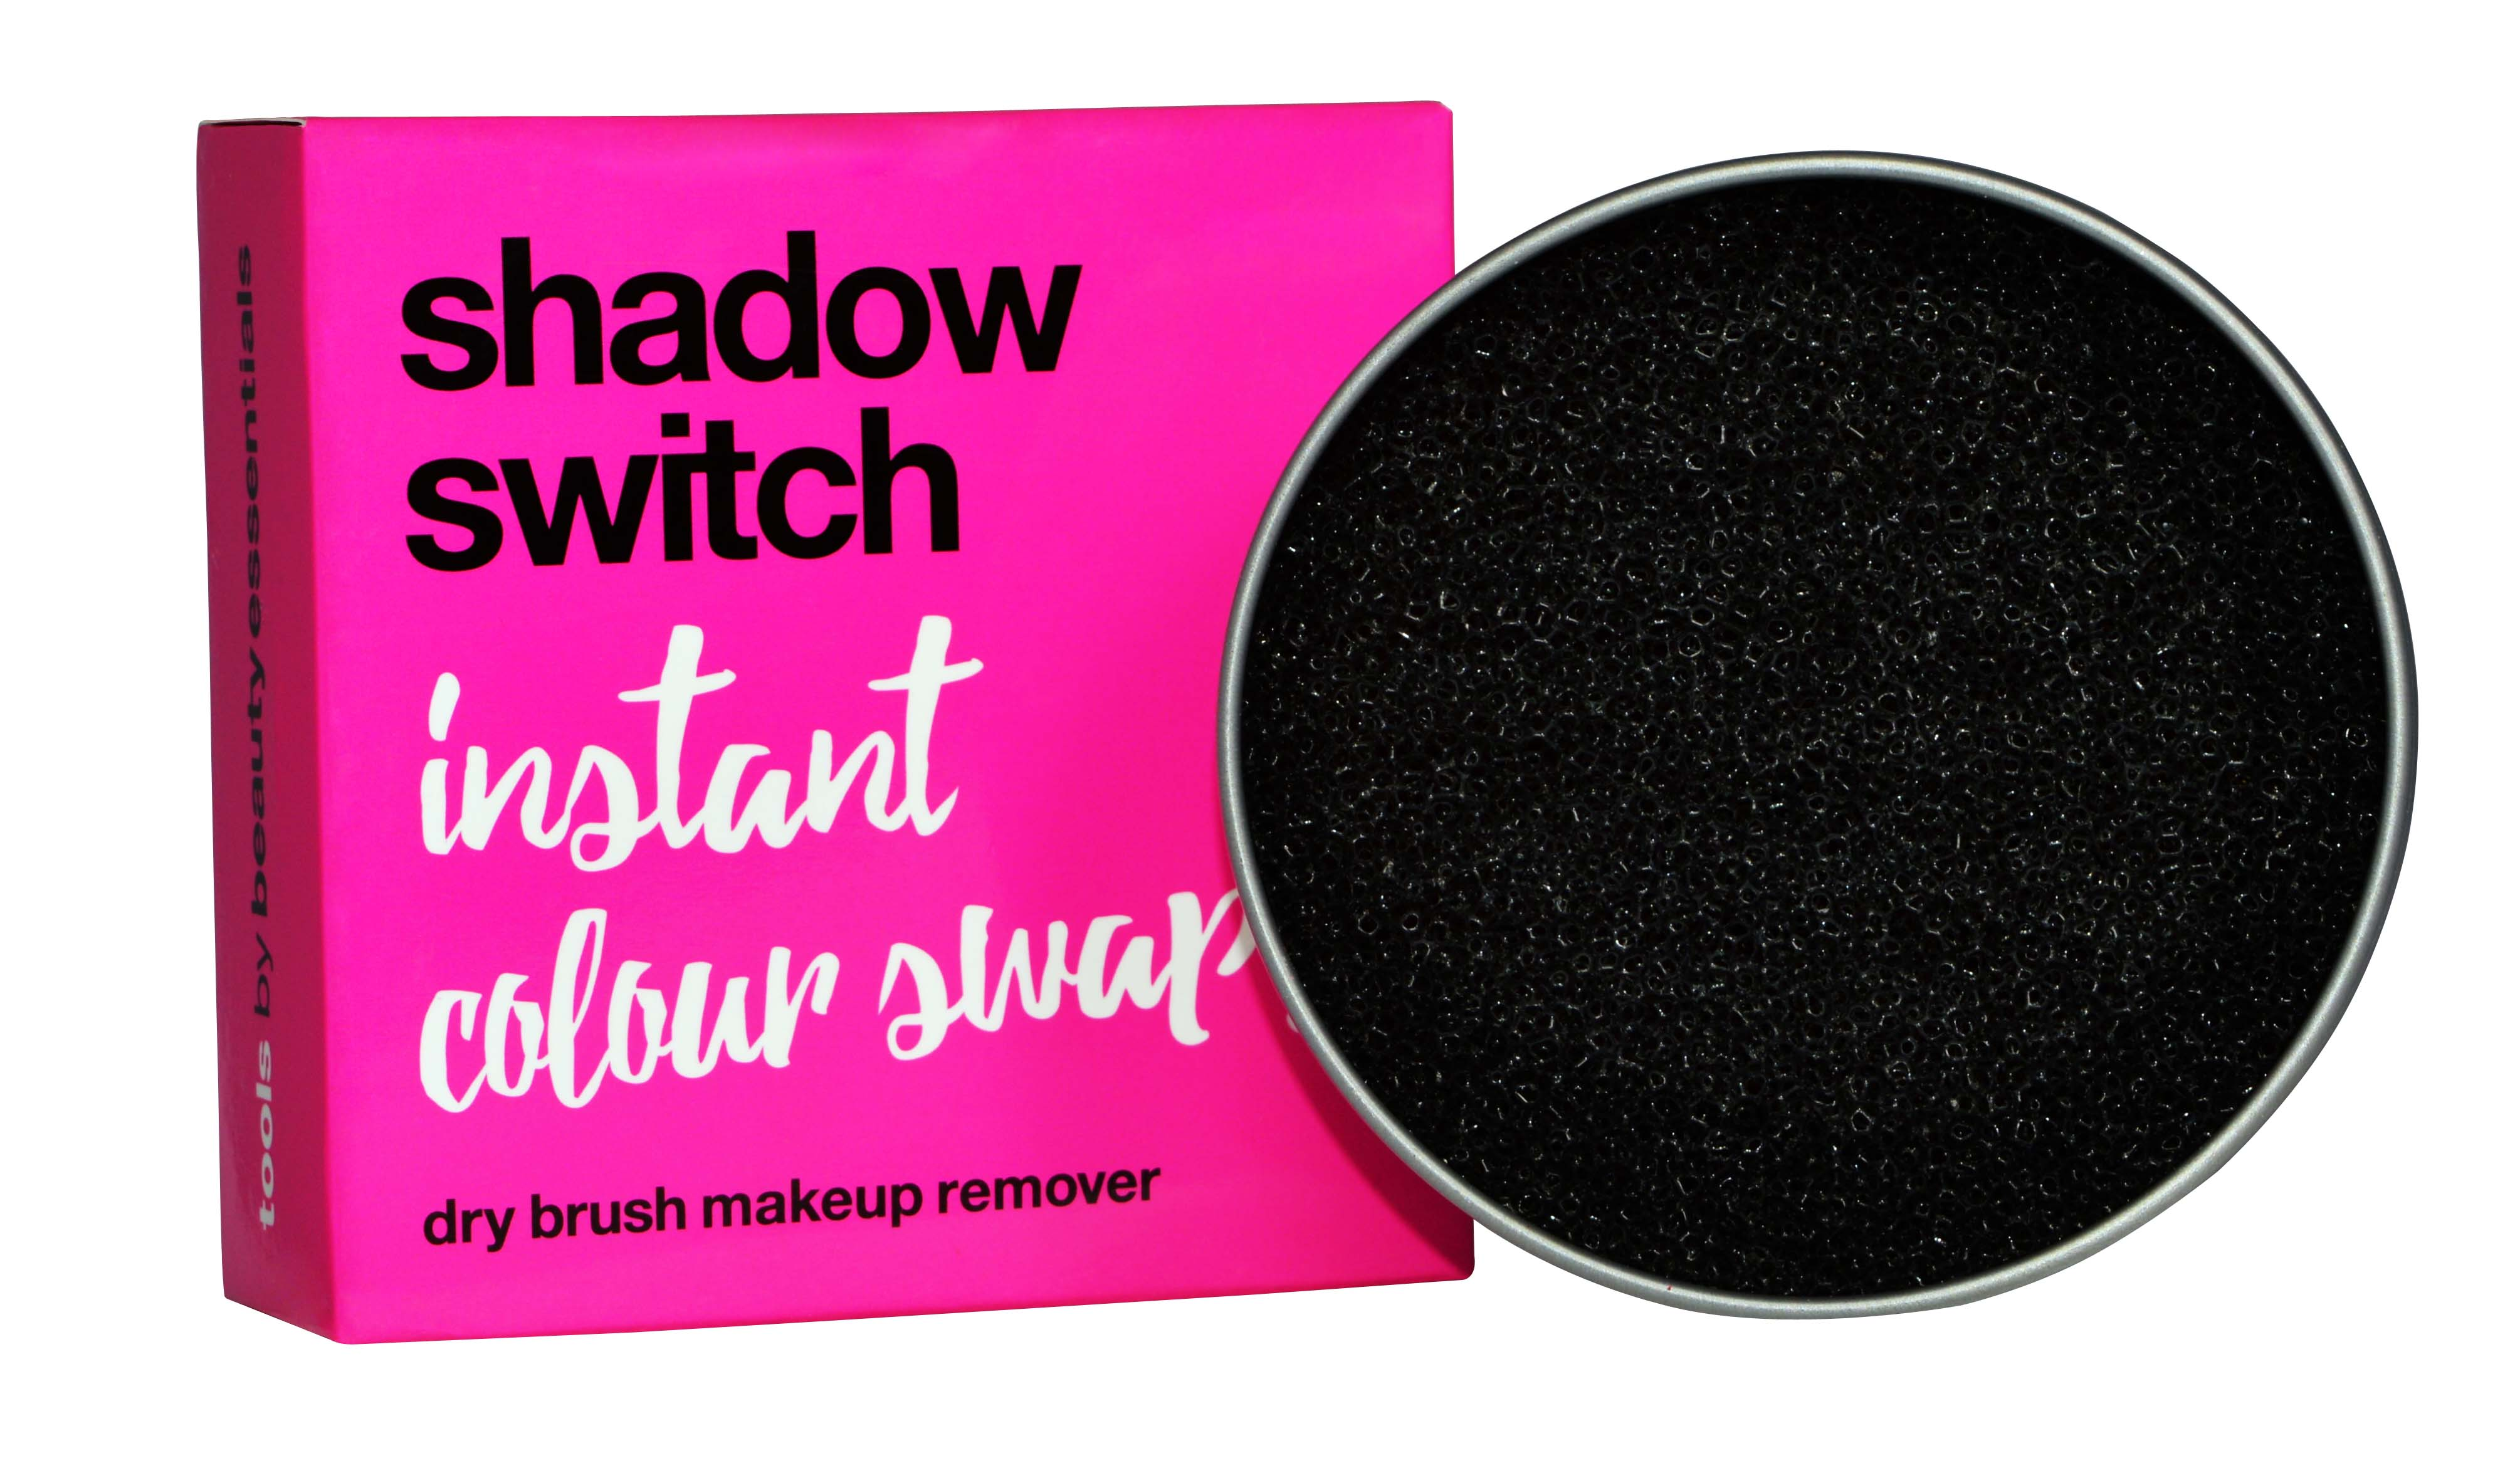 Meet…The Shadow Switch!